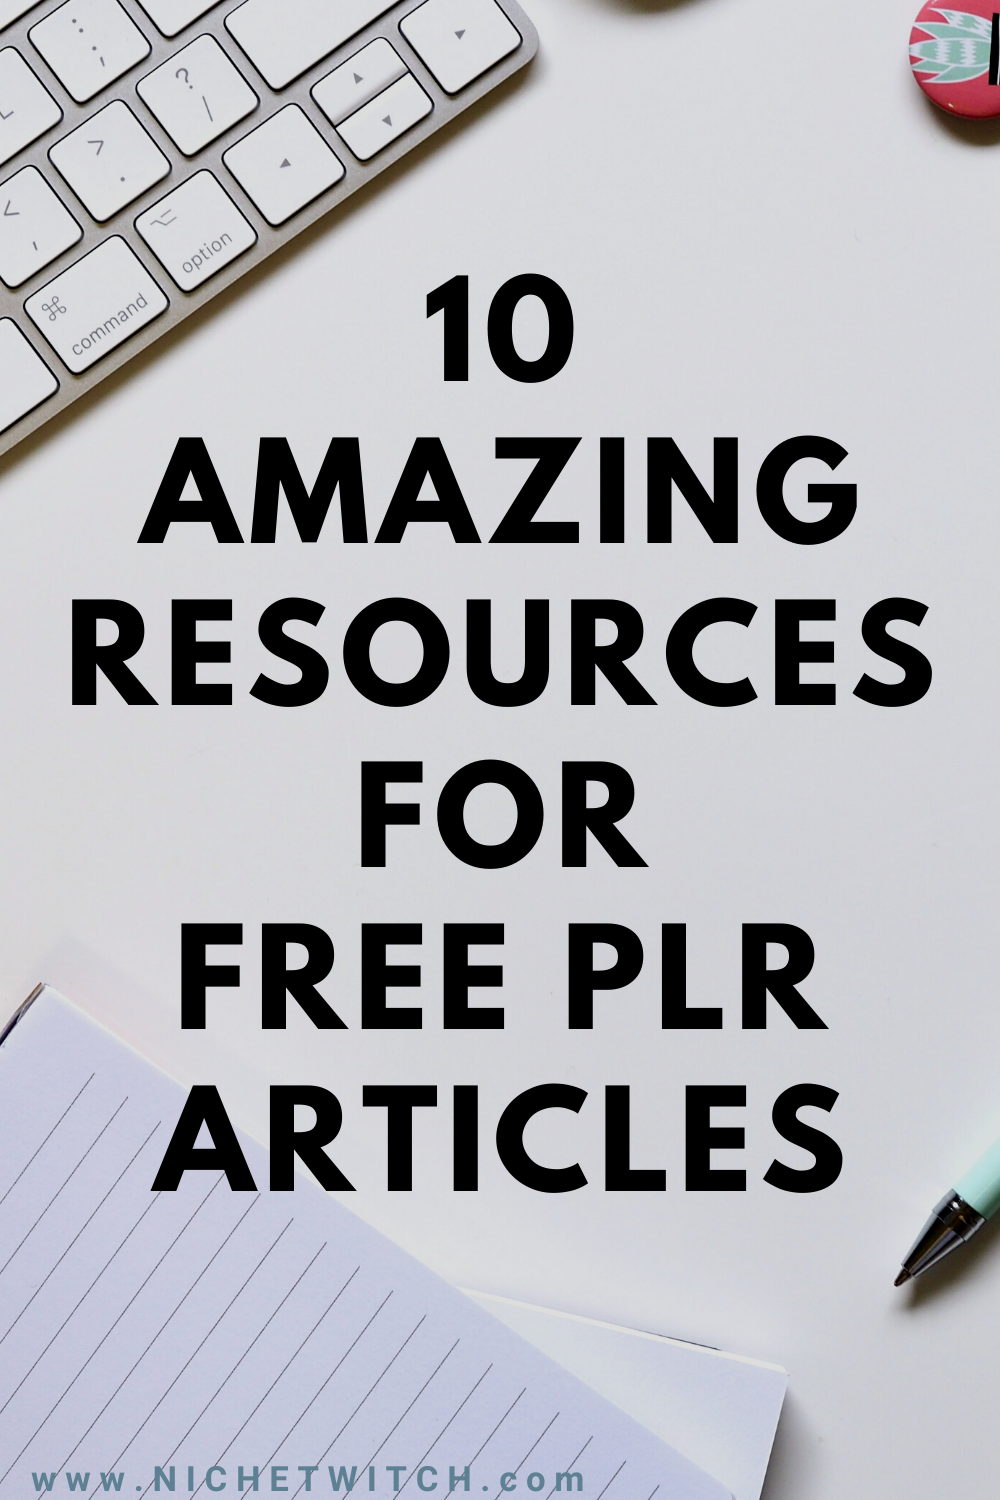 10 Amazing Resources for Free PLR Articles (pinnable featured image)